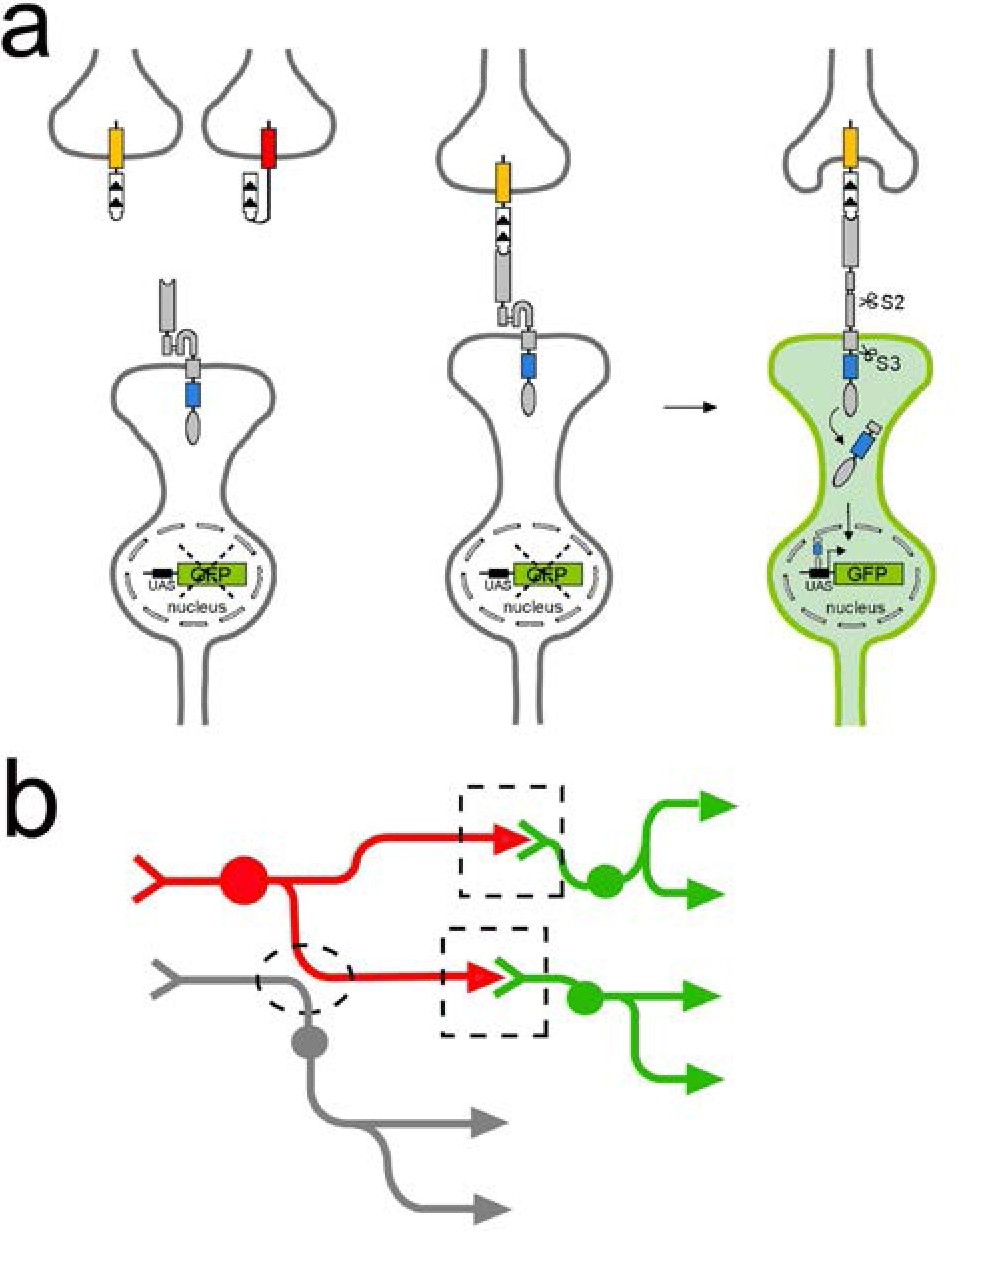 Tracing Neuronal Circuits In Transgenic Animals By Transneuronal September 2013 Diagram Circuit Tract Using Ligand Induced Intramembrane Proteolysis To Reveal Of Neurons Connected Synapses